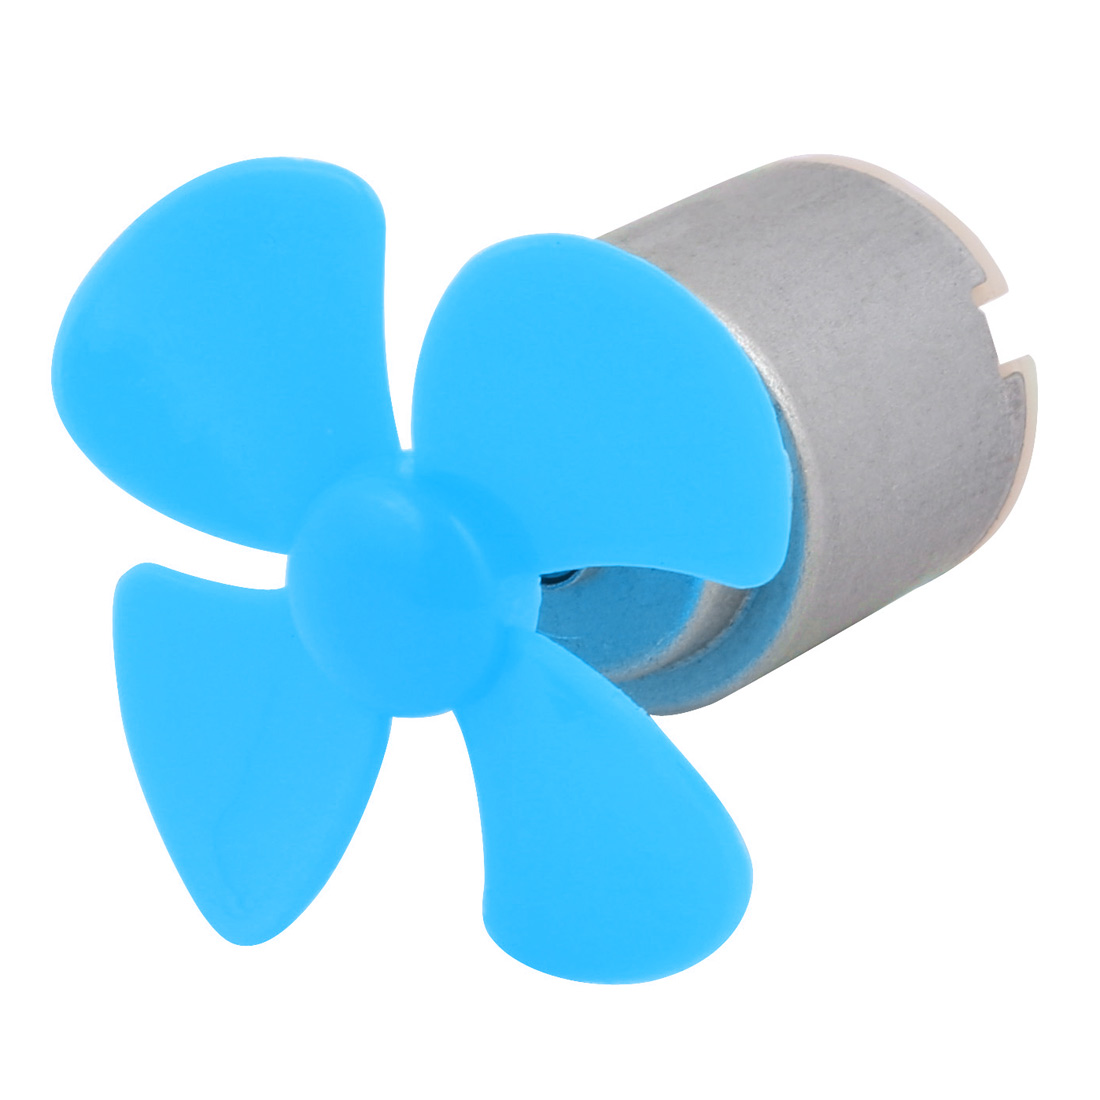 DC 3V 0.13A 17000RPM Strong Force Motor 4 Vanes 40mm Blue Propeller for RC Aircraft